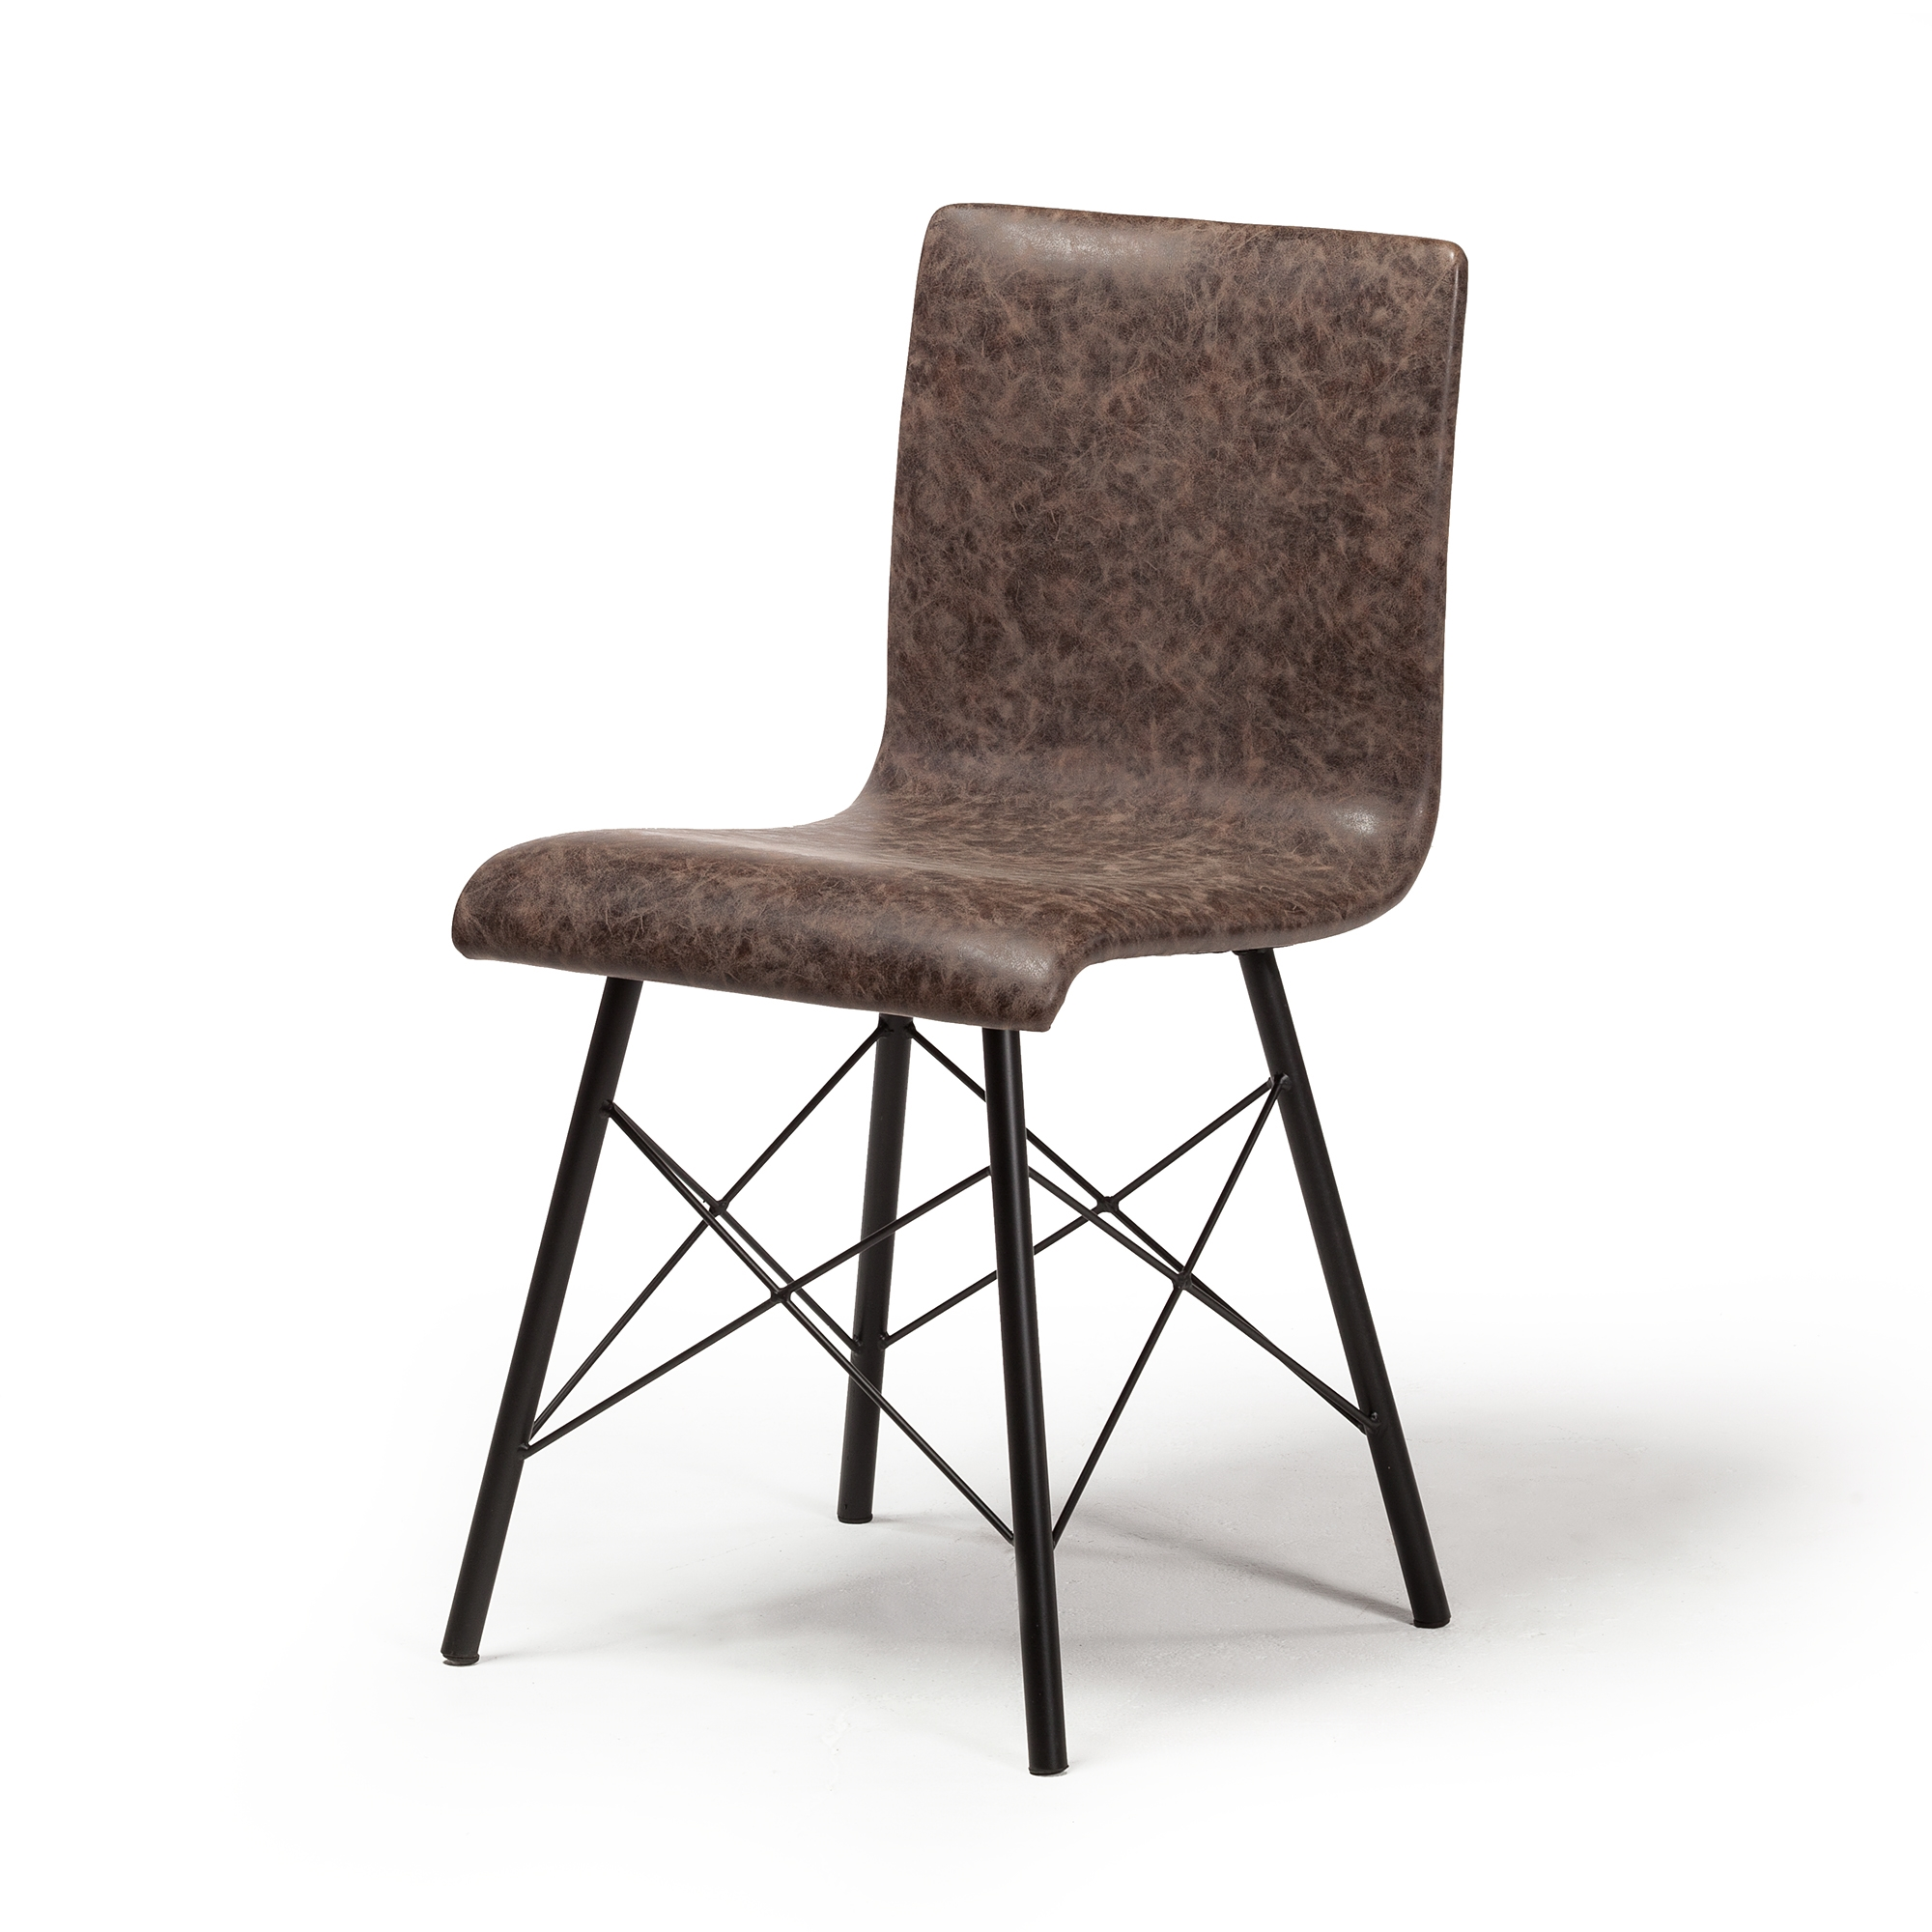 Davis Dining Chair In Distressed Brown Leather